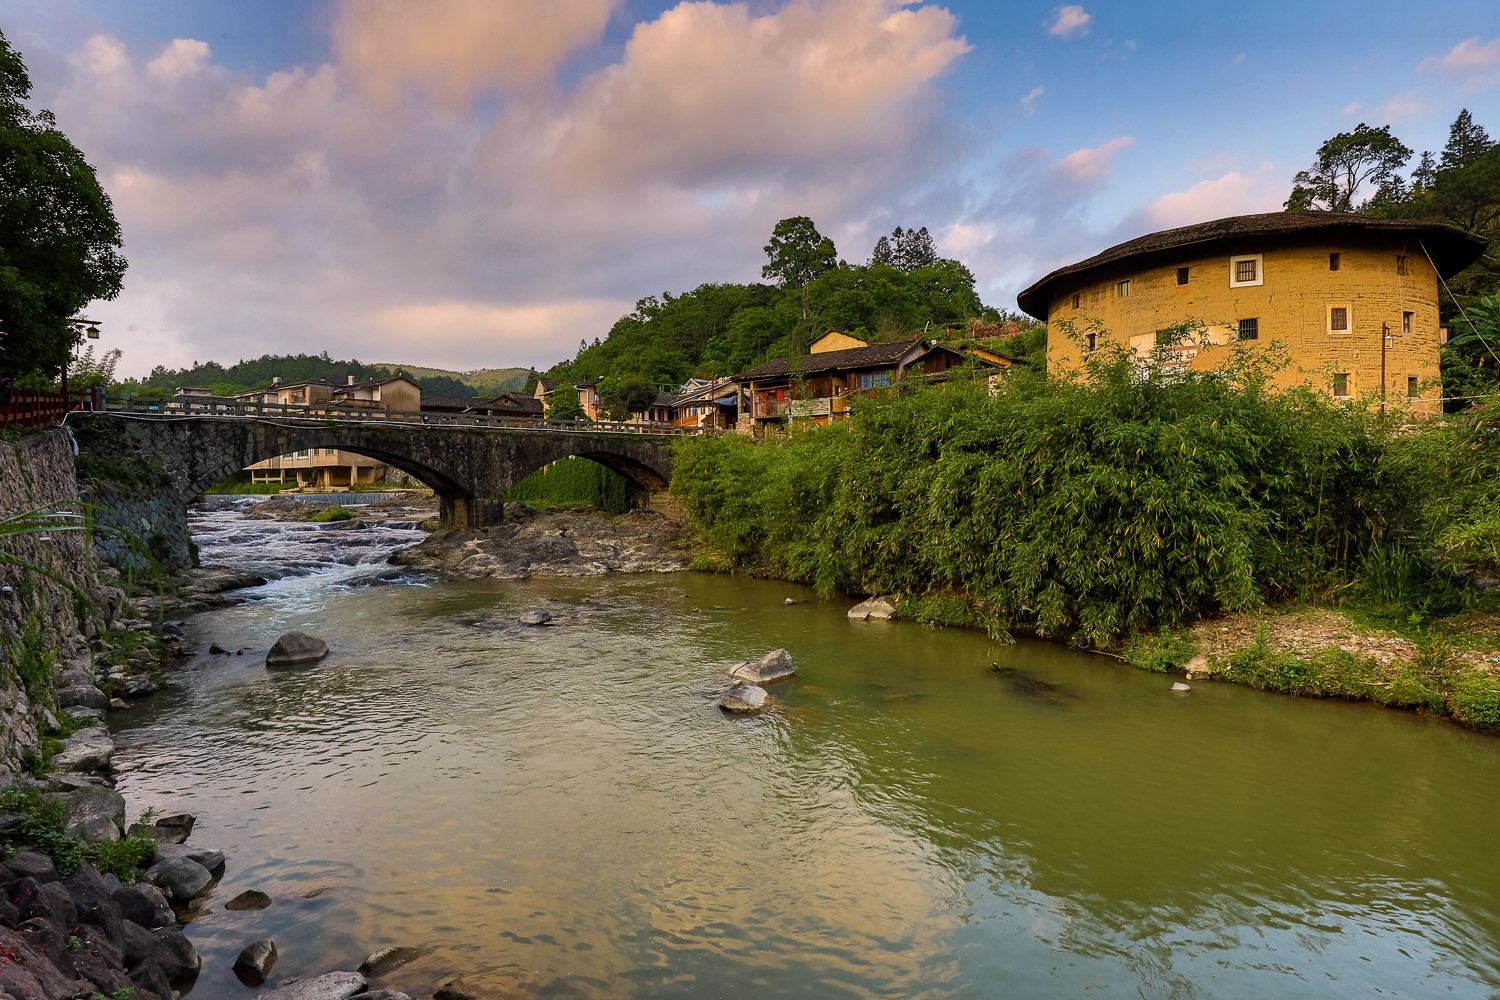 Picture of sunset on the river, with tulou building.